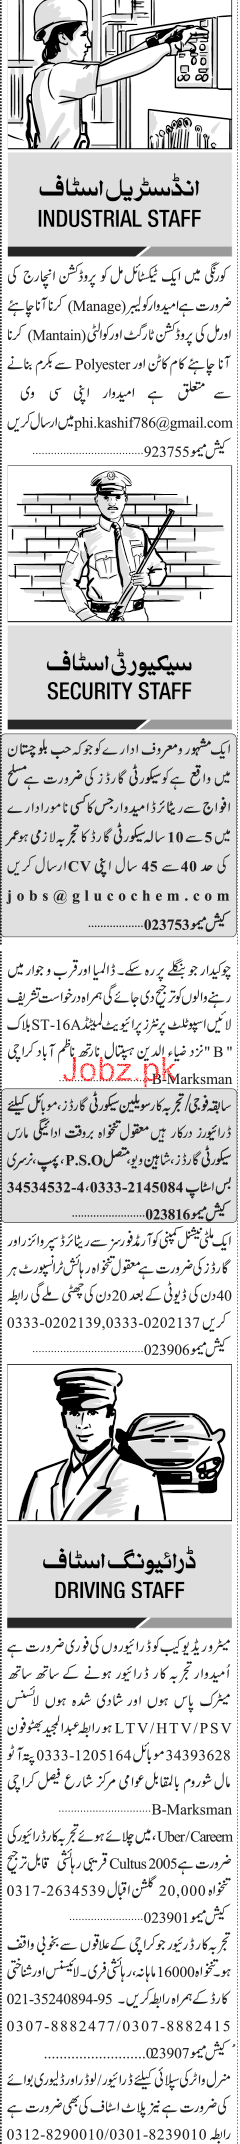 Production Incharge, Security Guards Job Opportunity